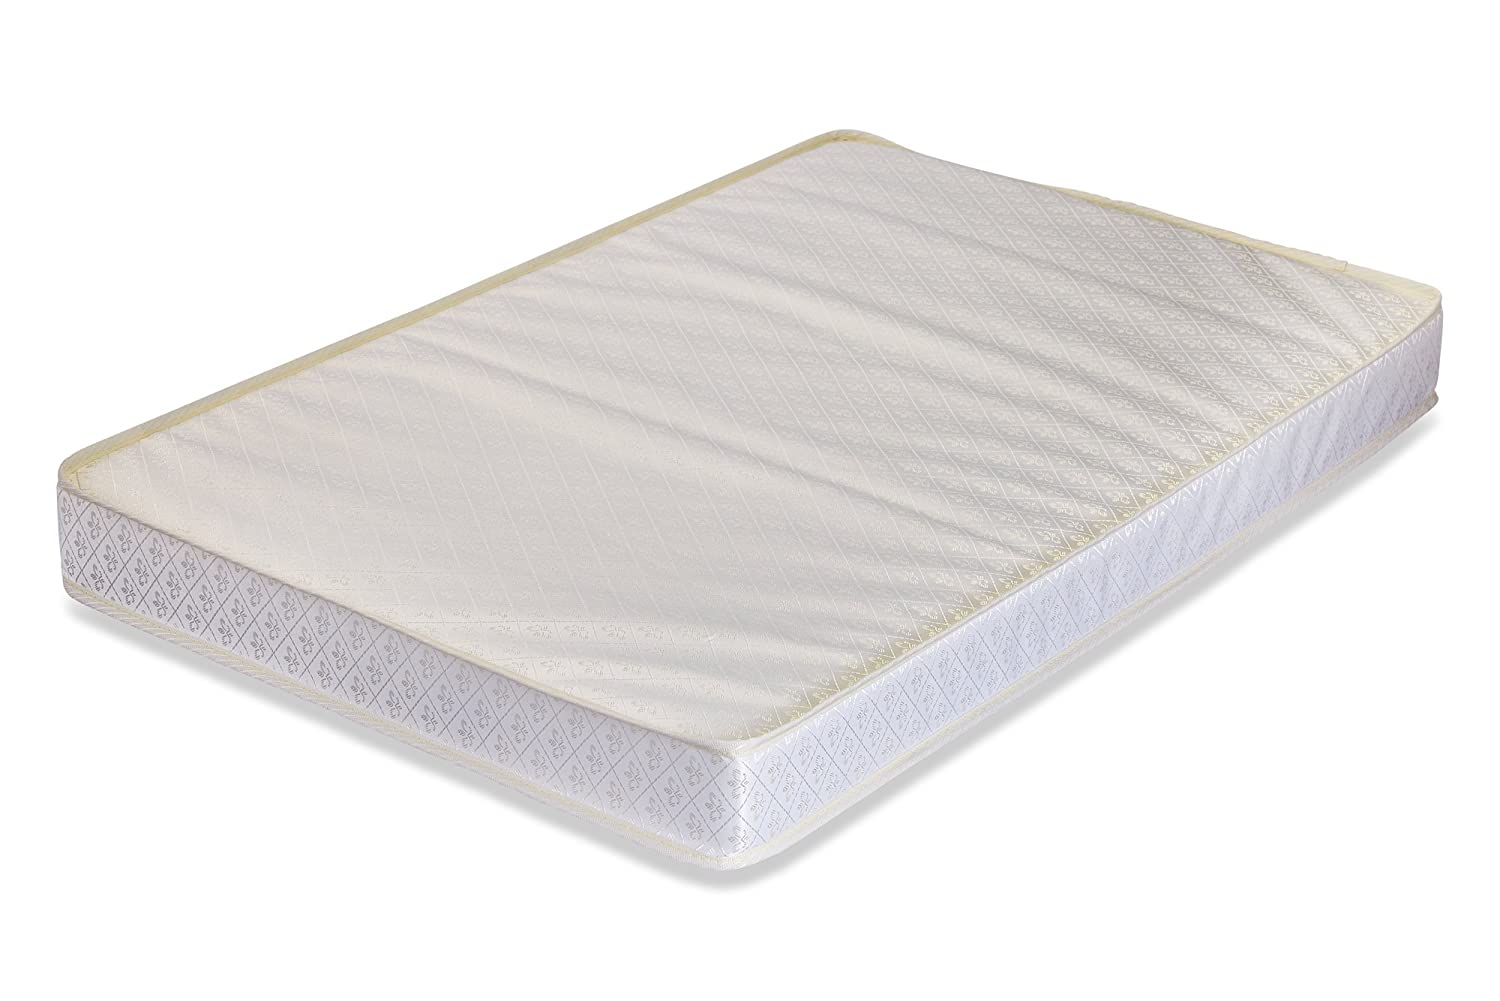 LA Baby 3 Portable/Mini Crib Mattress with Organic Cotton Layer - Made in USA with Waterproof, Easy to Clean, Hypo-Allergenic, Anti-Microbial & Non-Toxic Cover, 24 x 38 - Made in USA P-3508-ORG